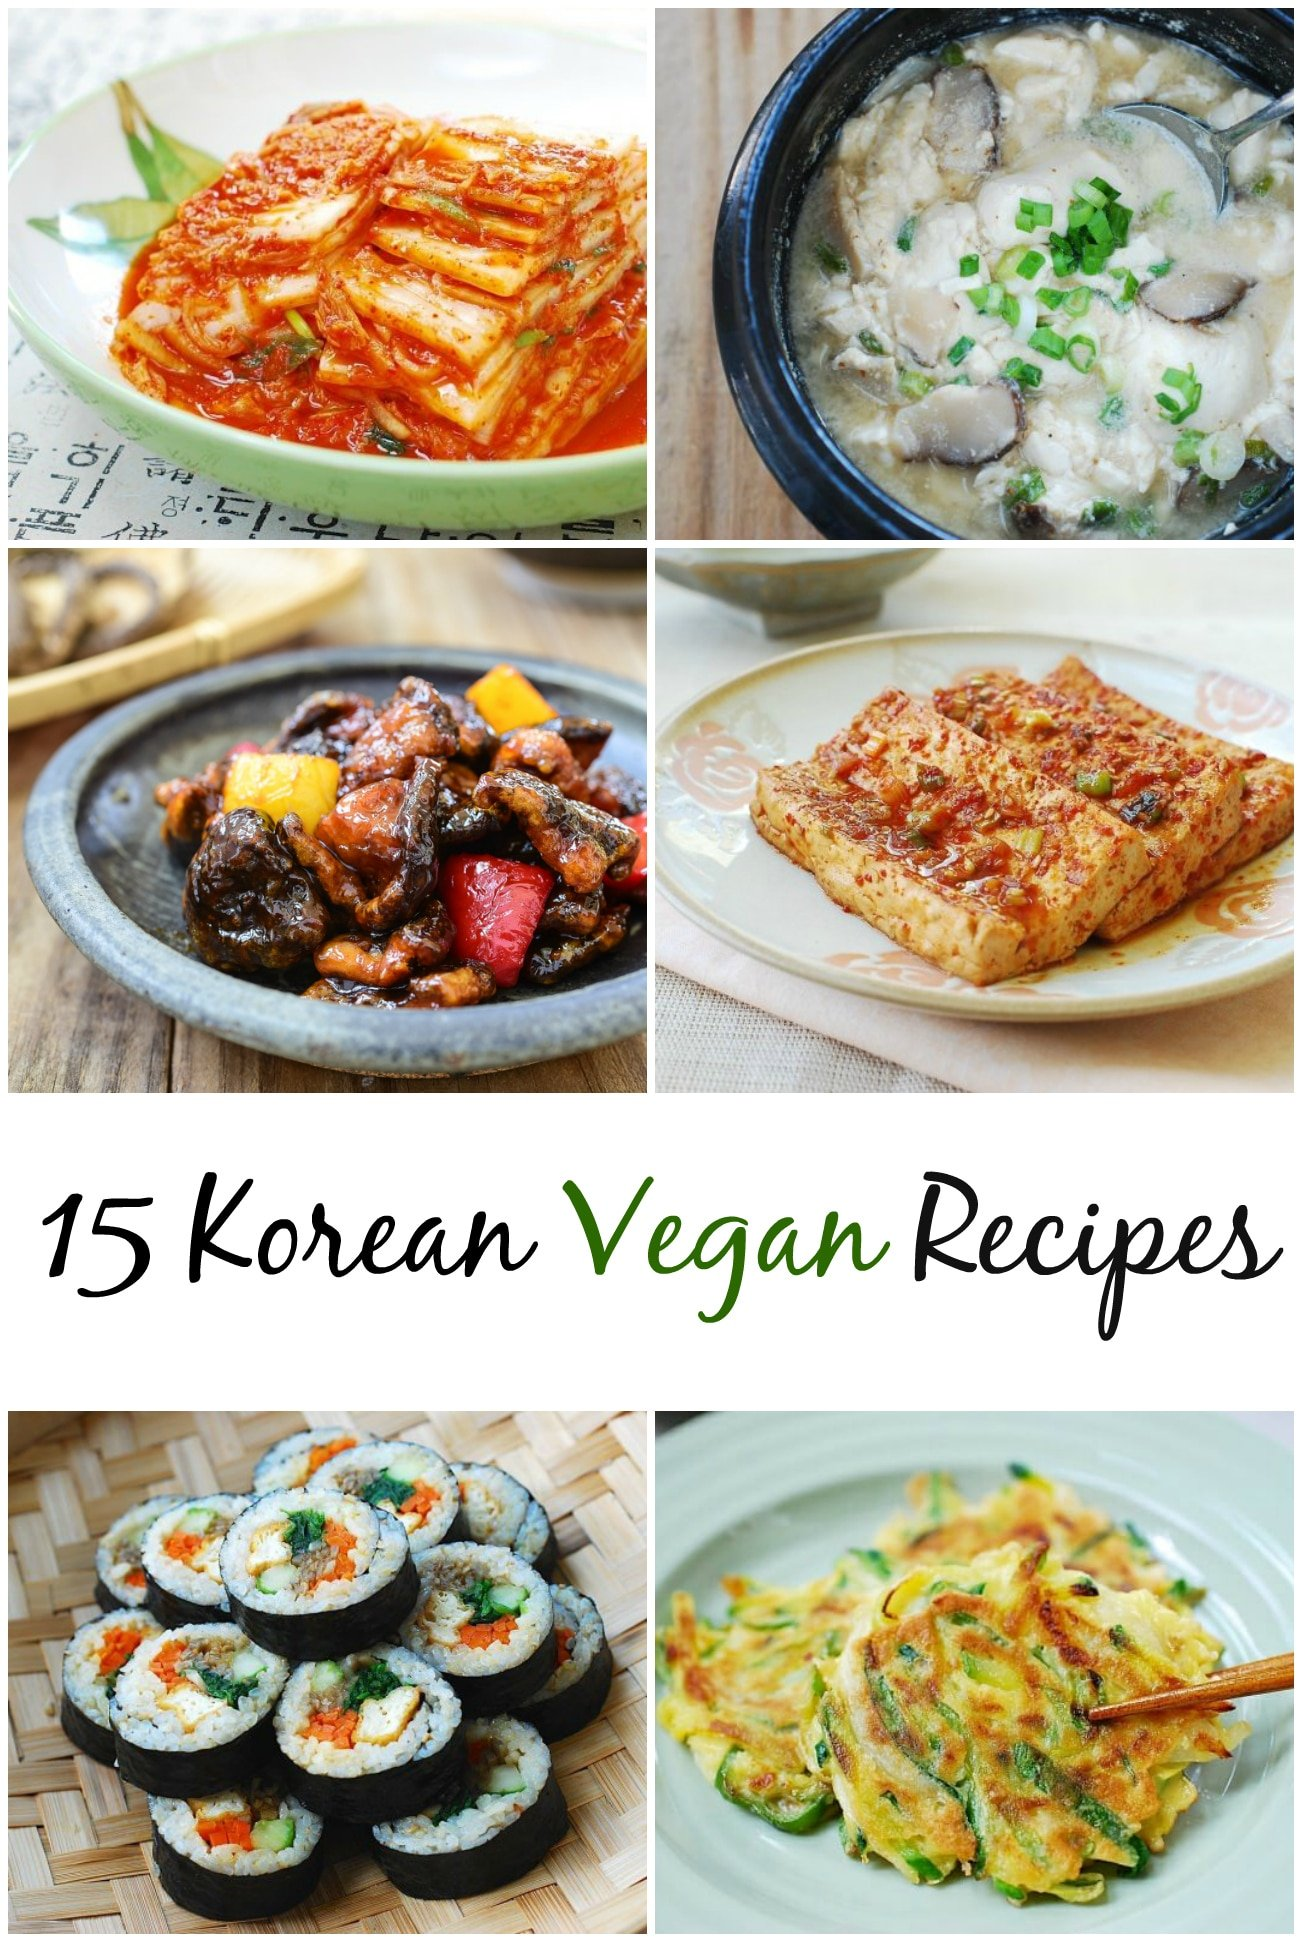 6-photo collage titled 15 Korean vegan recipes